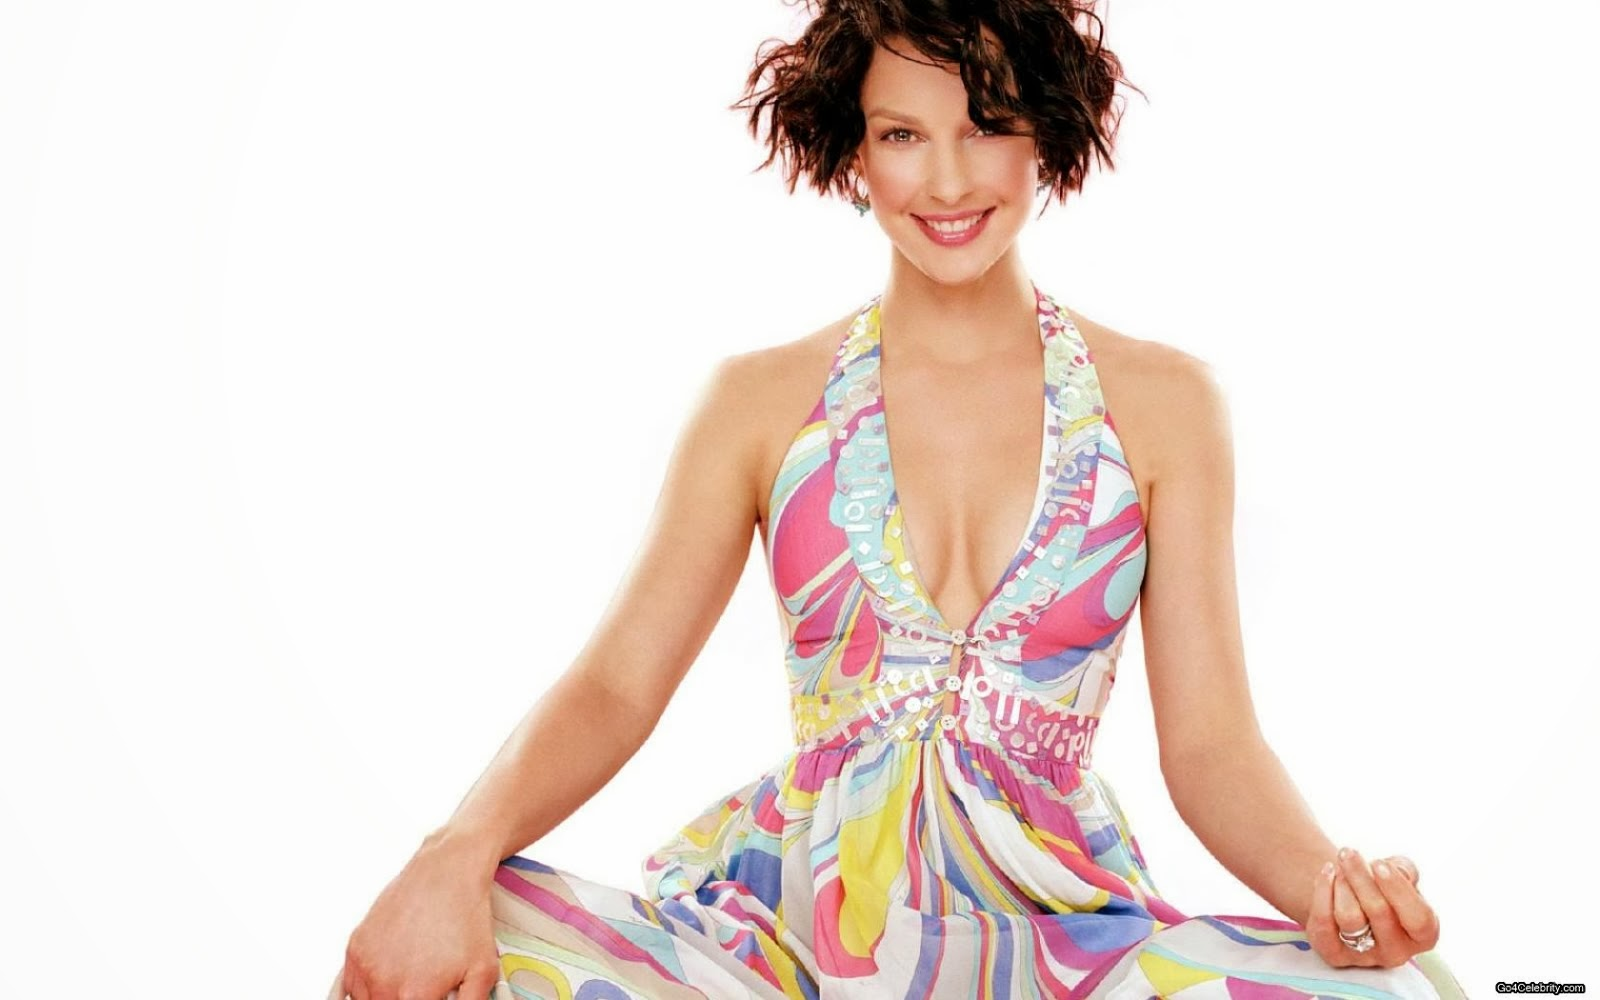 GRATUITOUS ASHLEY JUDD PHOTO*